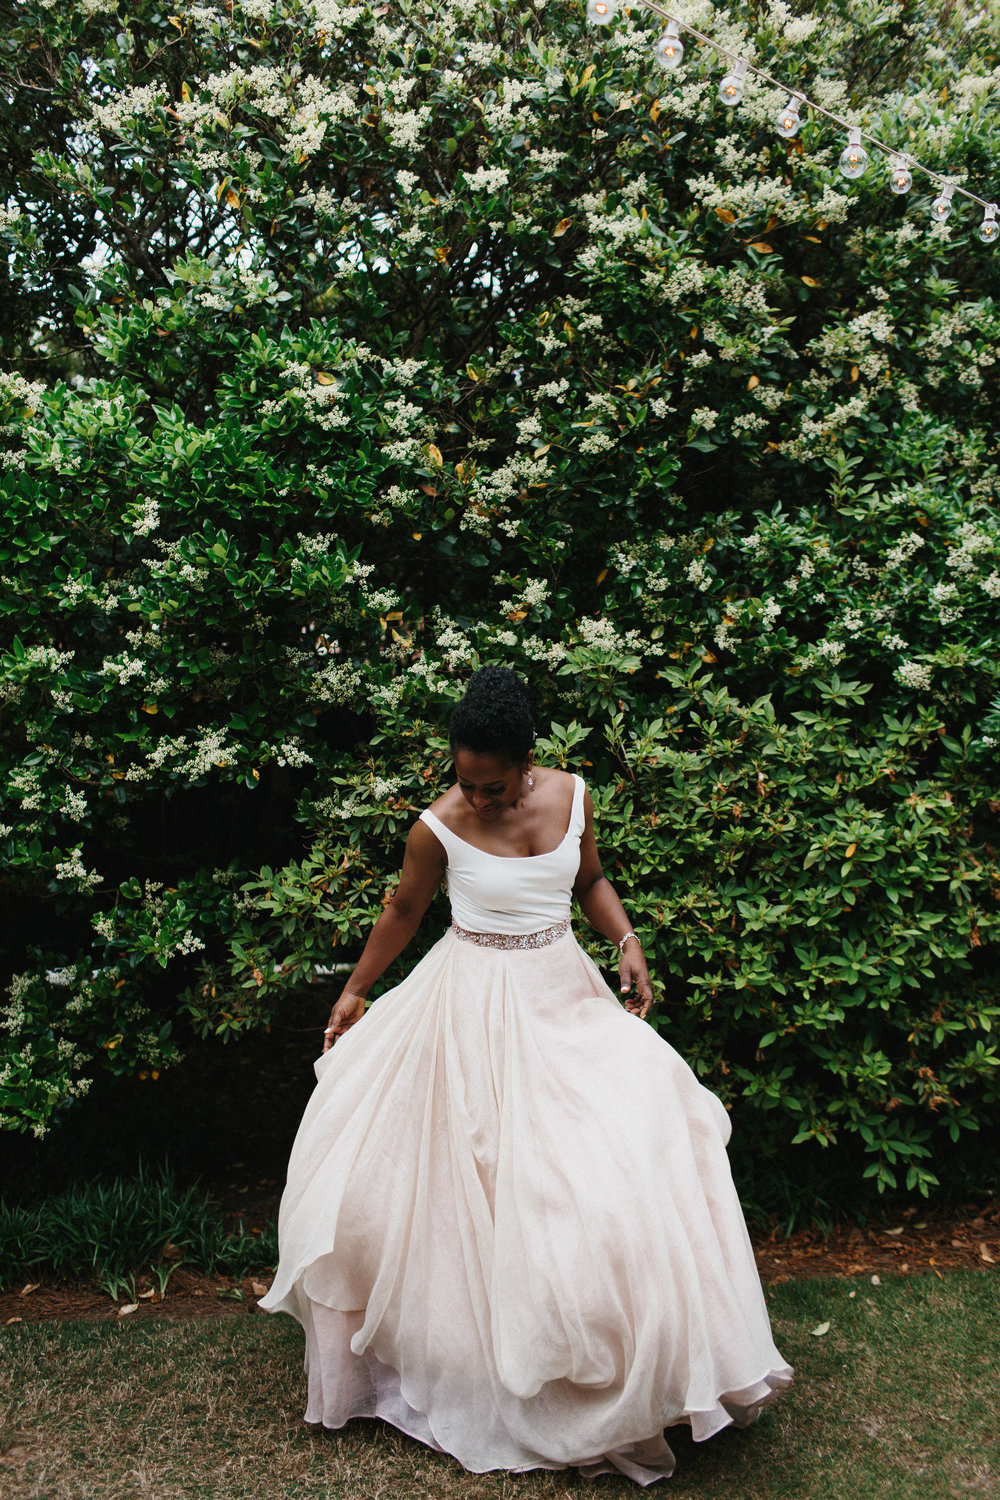 the_atrium_wedding_atlanta_norcross_lifestyle_photographers_lgbtq_1120.jpg